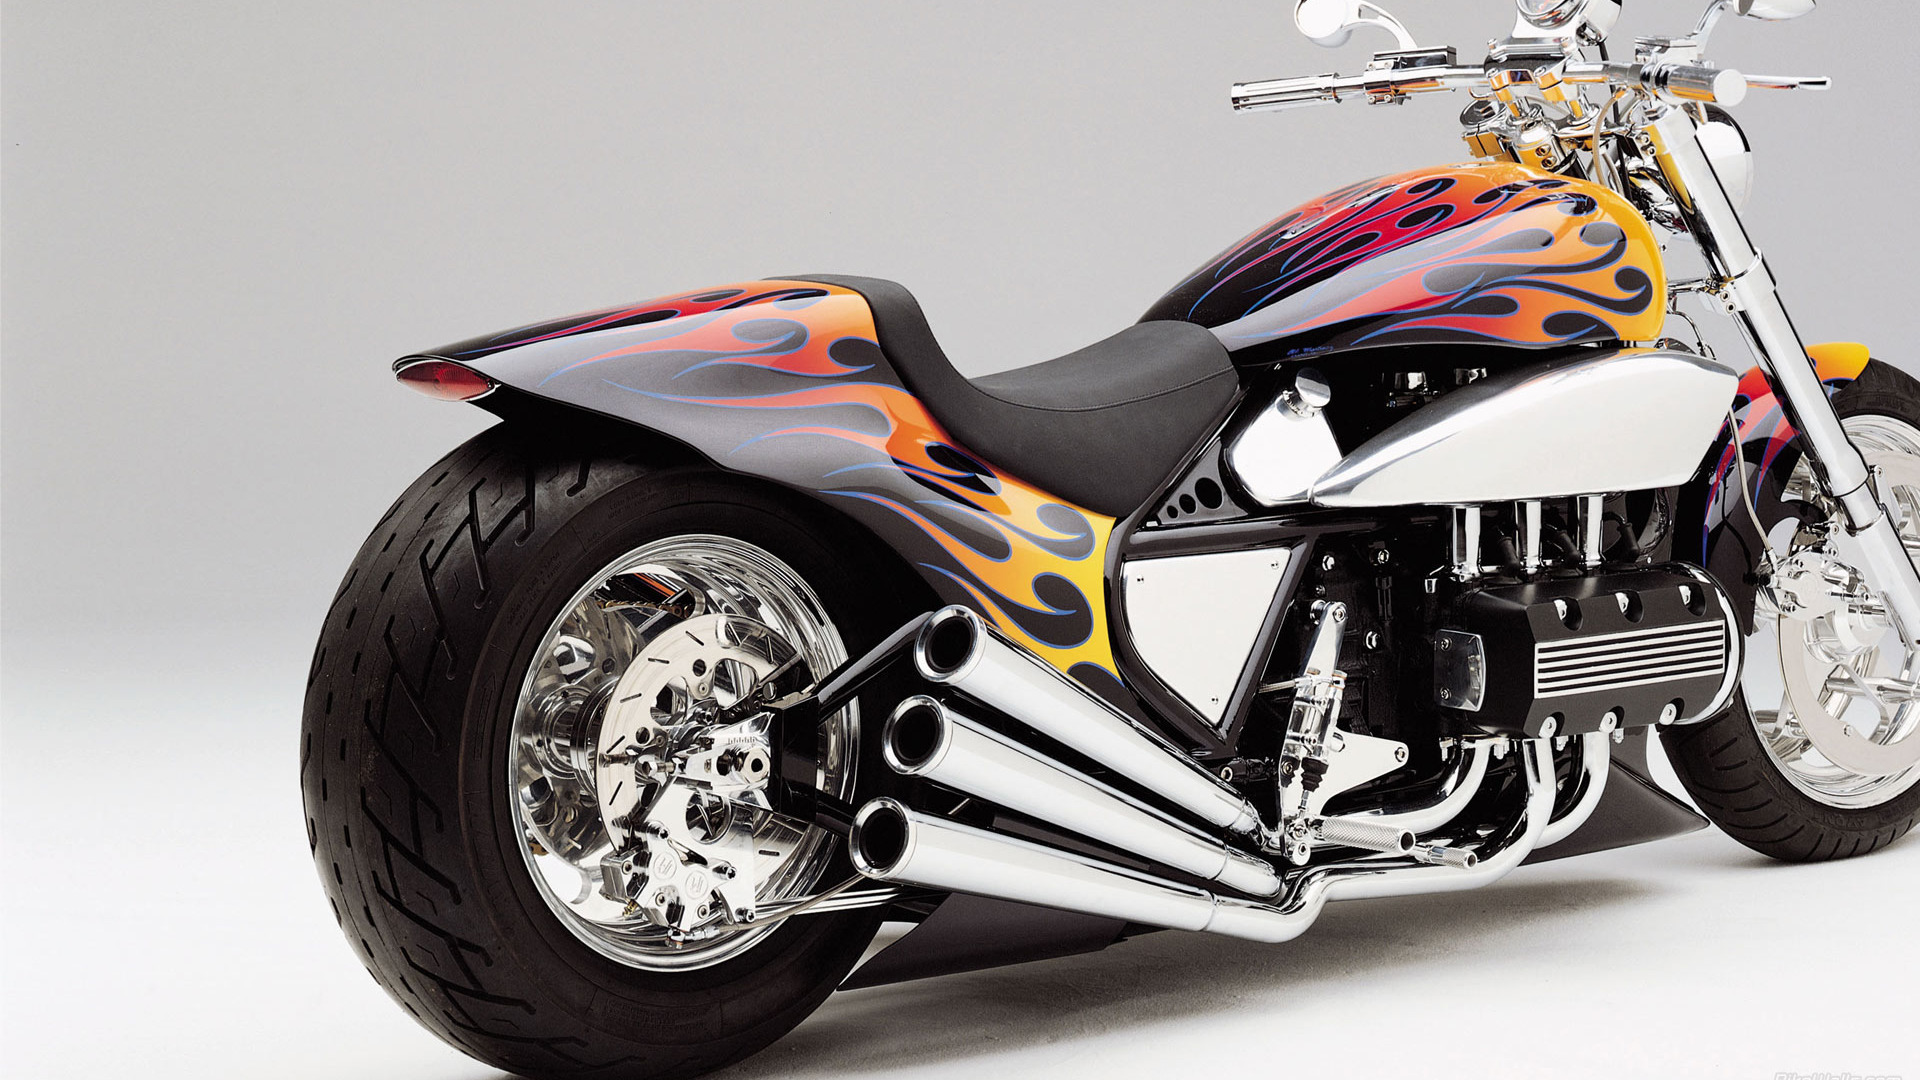 Download 'fast flaming superbike' HD wallpaper